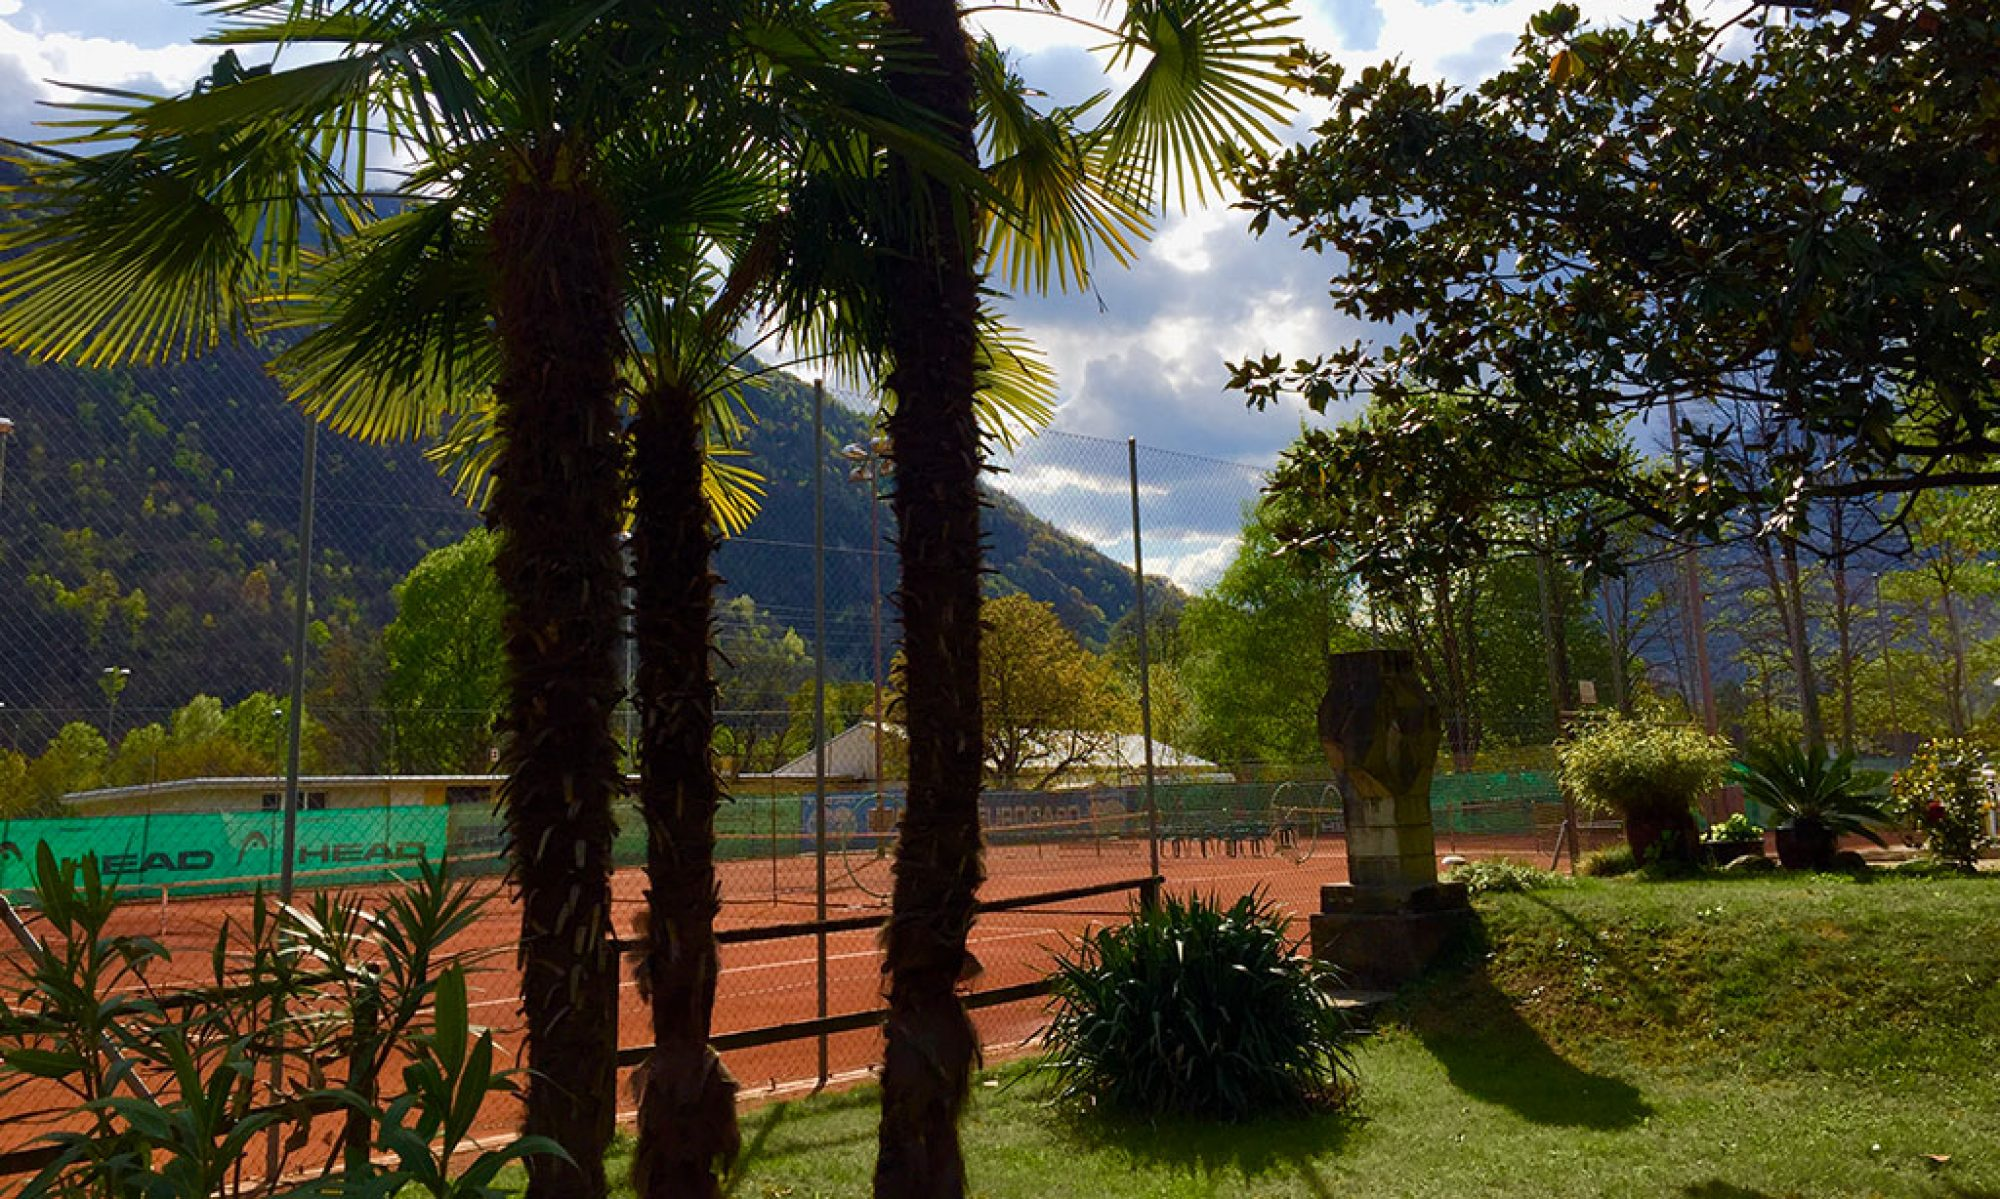 Tennis Club Pedemonte Verscio